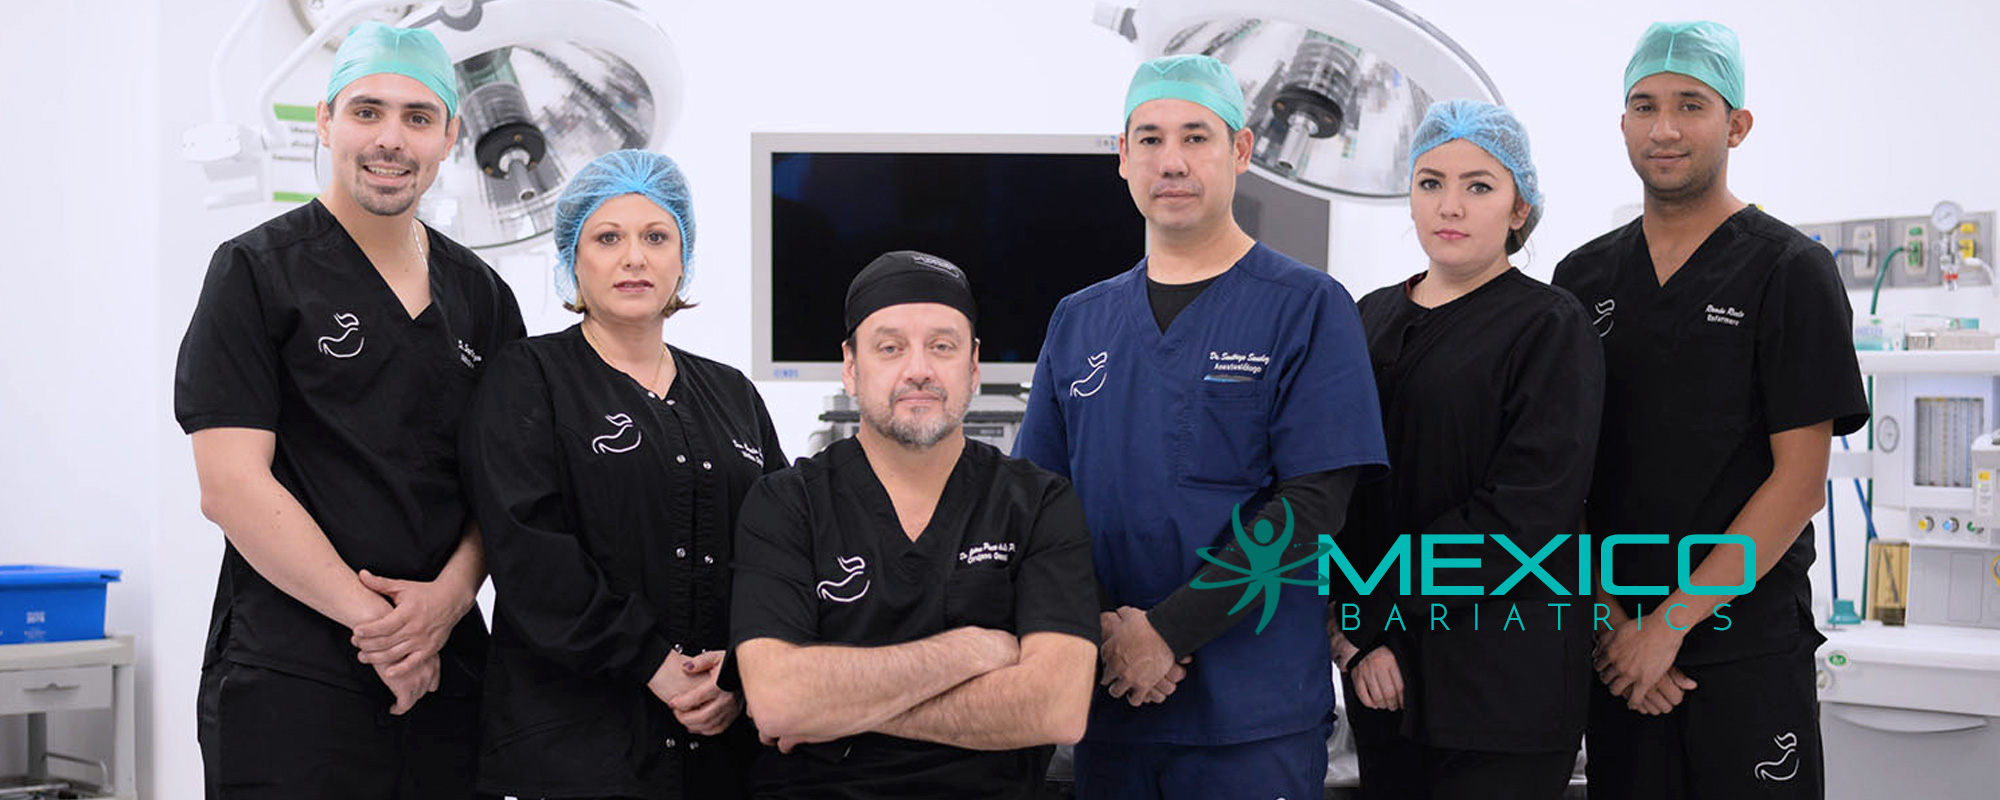 Mexico Bariatric Center offering safe and affordable bariatric surgery in Mexico.